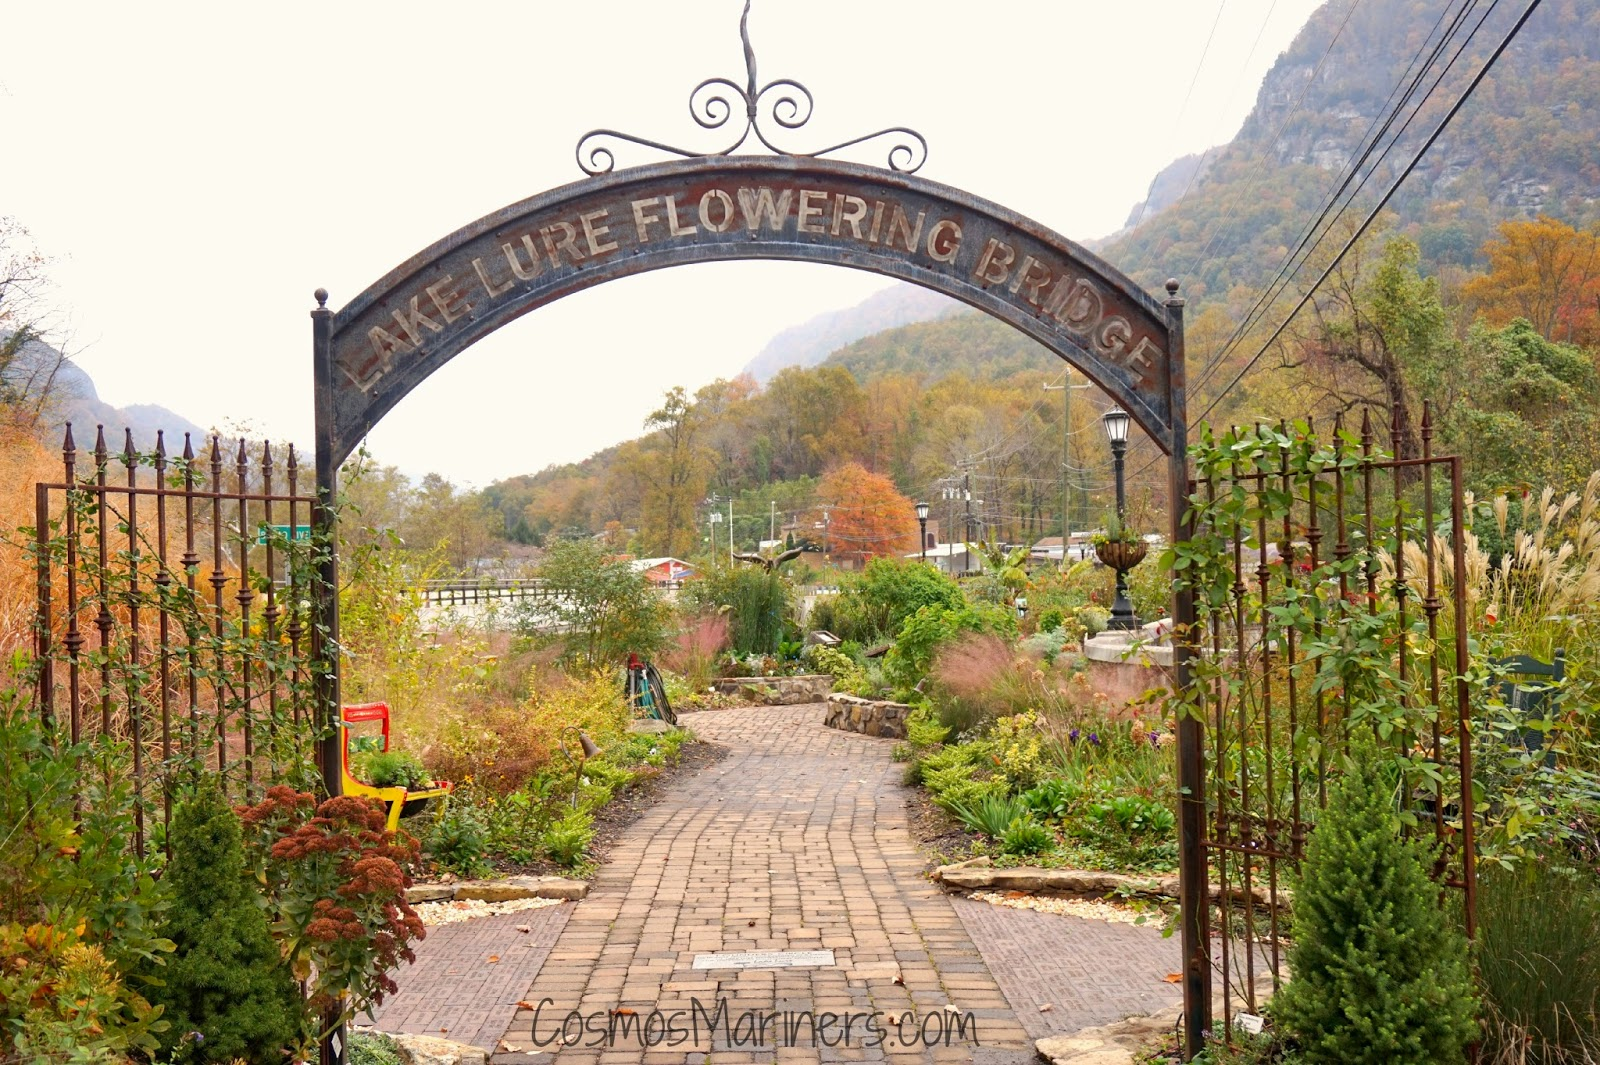 Lake Lure Flowering Bridge, Lake Lure, North Carolina | CosmosMariners.com